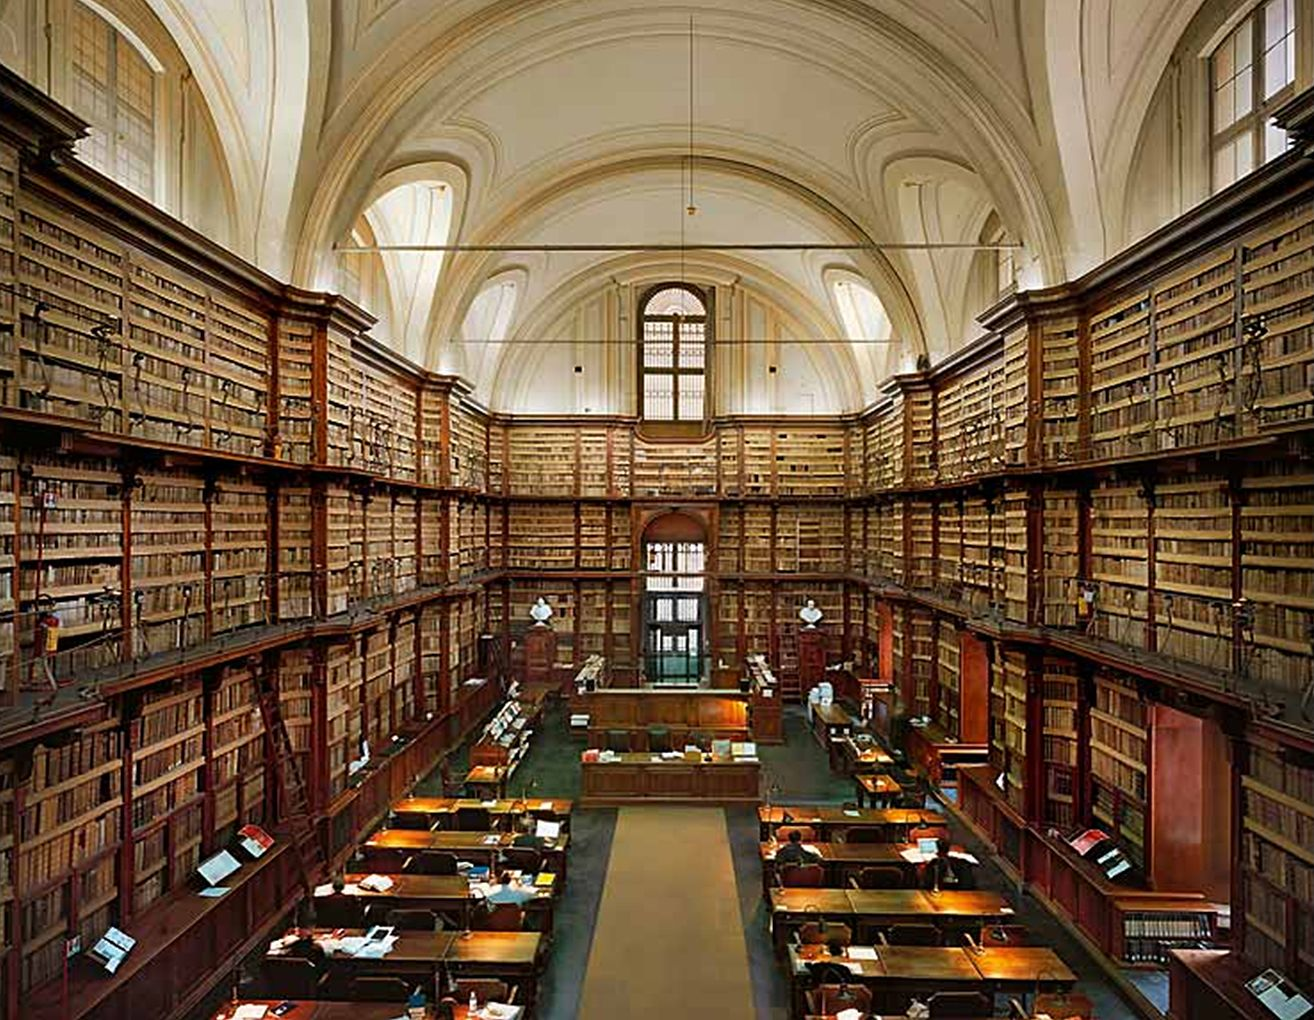 Harvard University Look At This Grand Library I Could Get Lost For Hours In Here